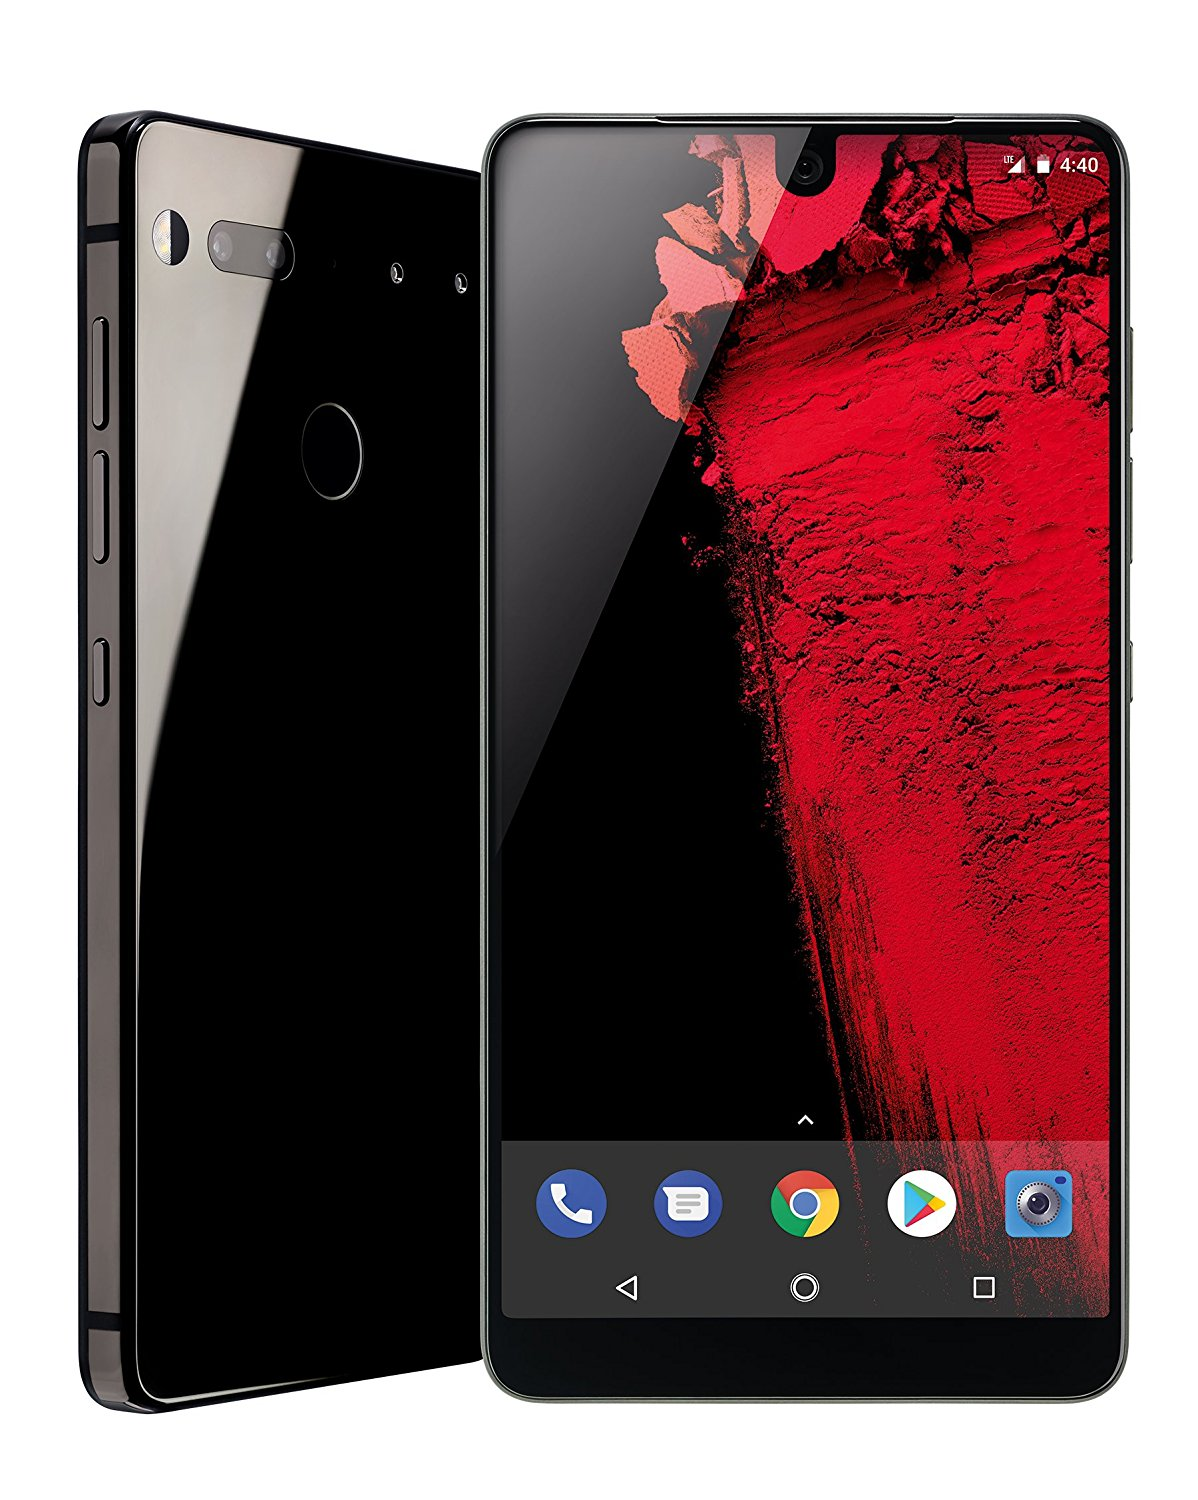 $399 - The Essential Phone